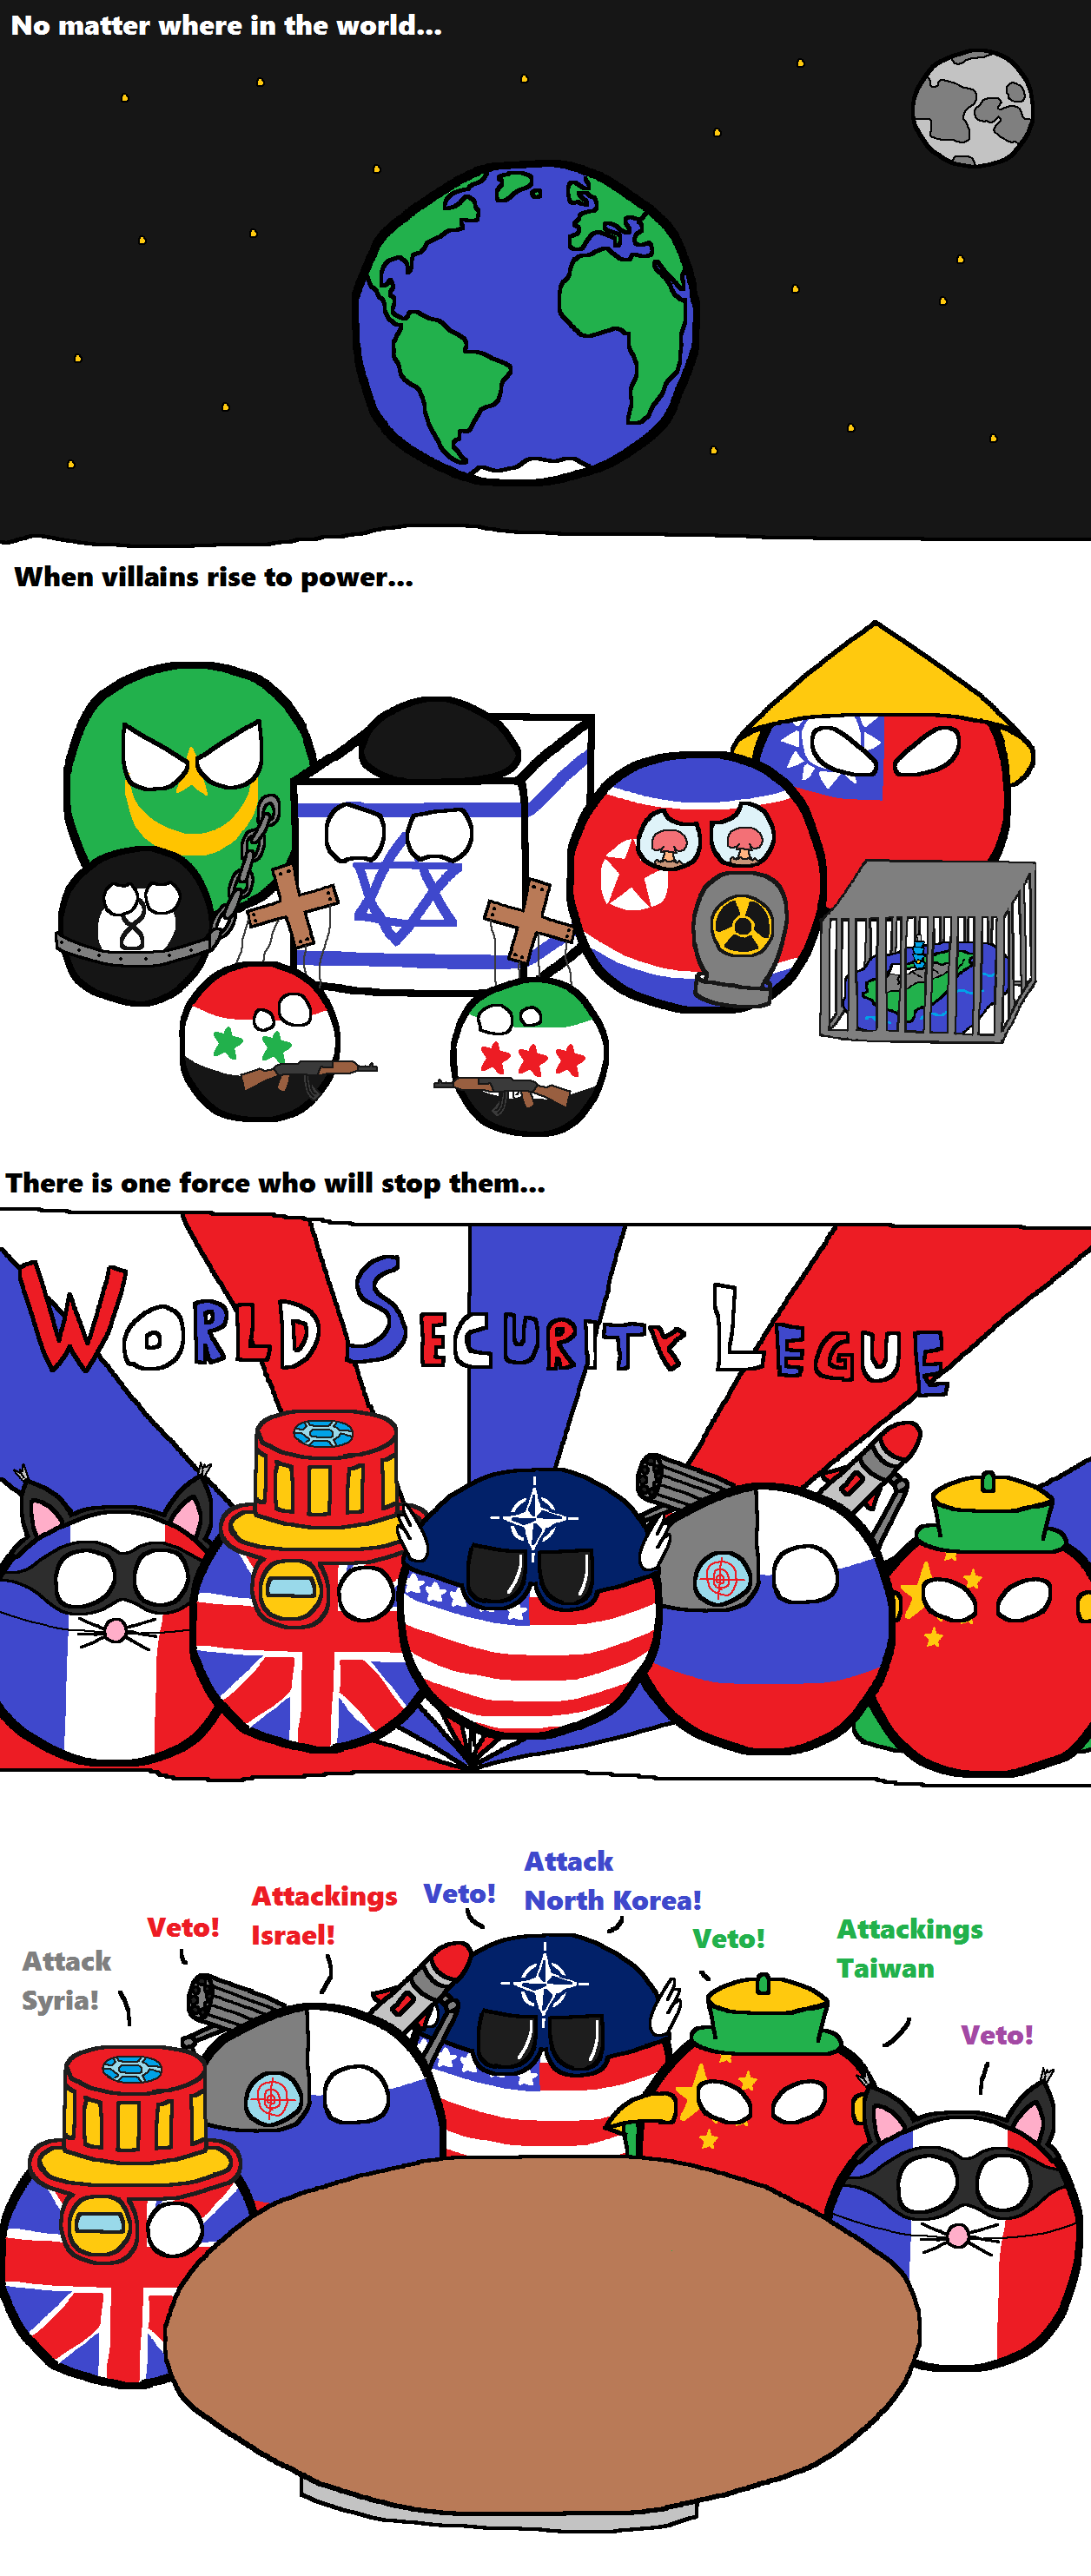 Lol France Nowadays D France Countryball Universe